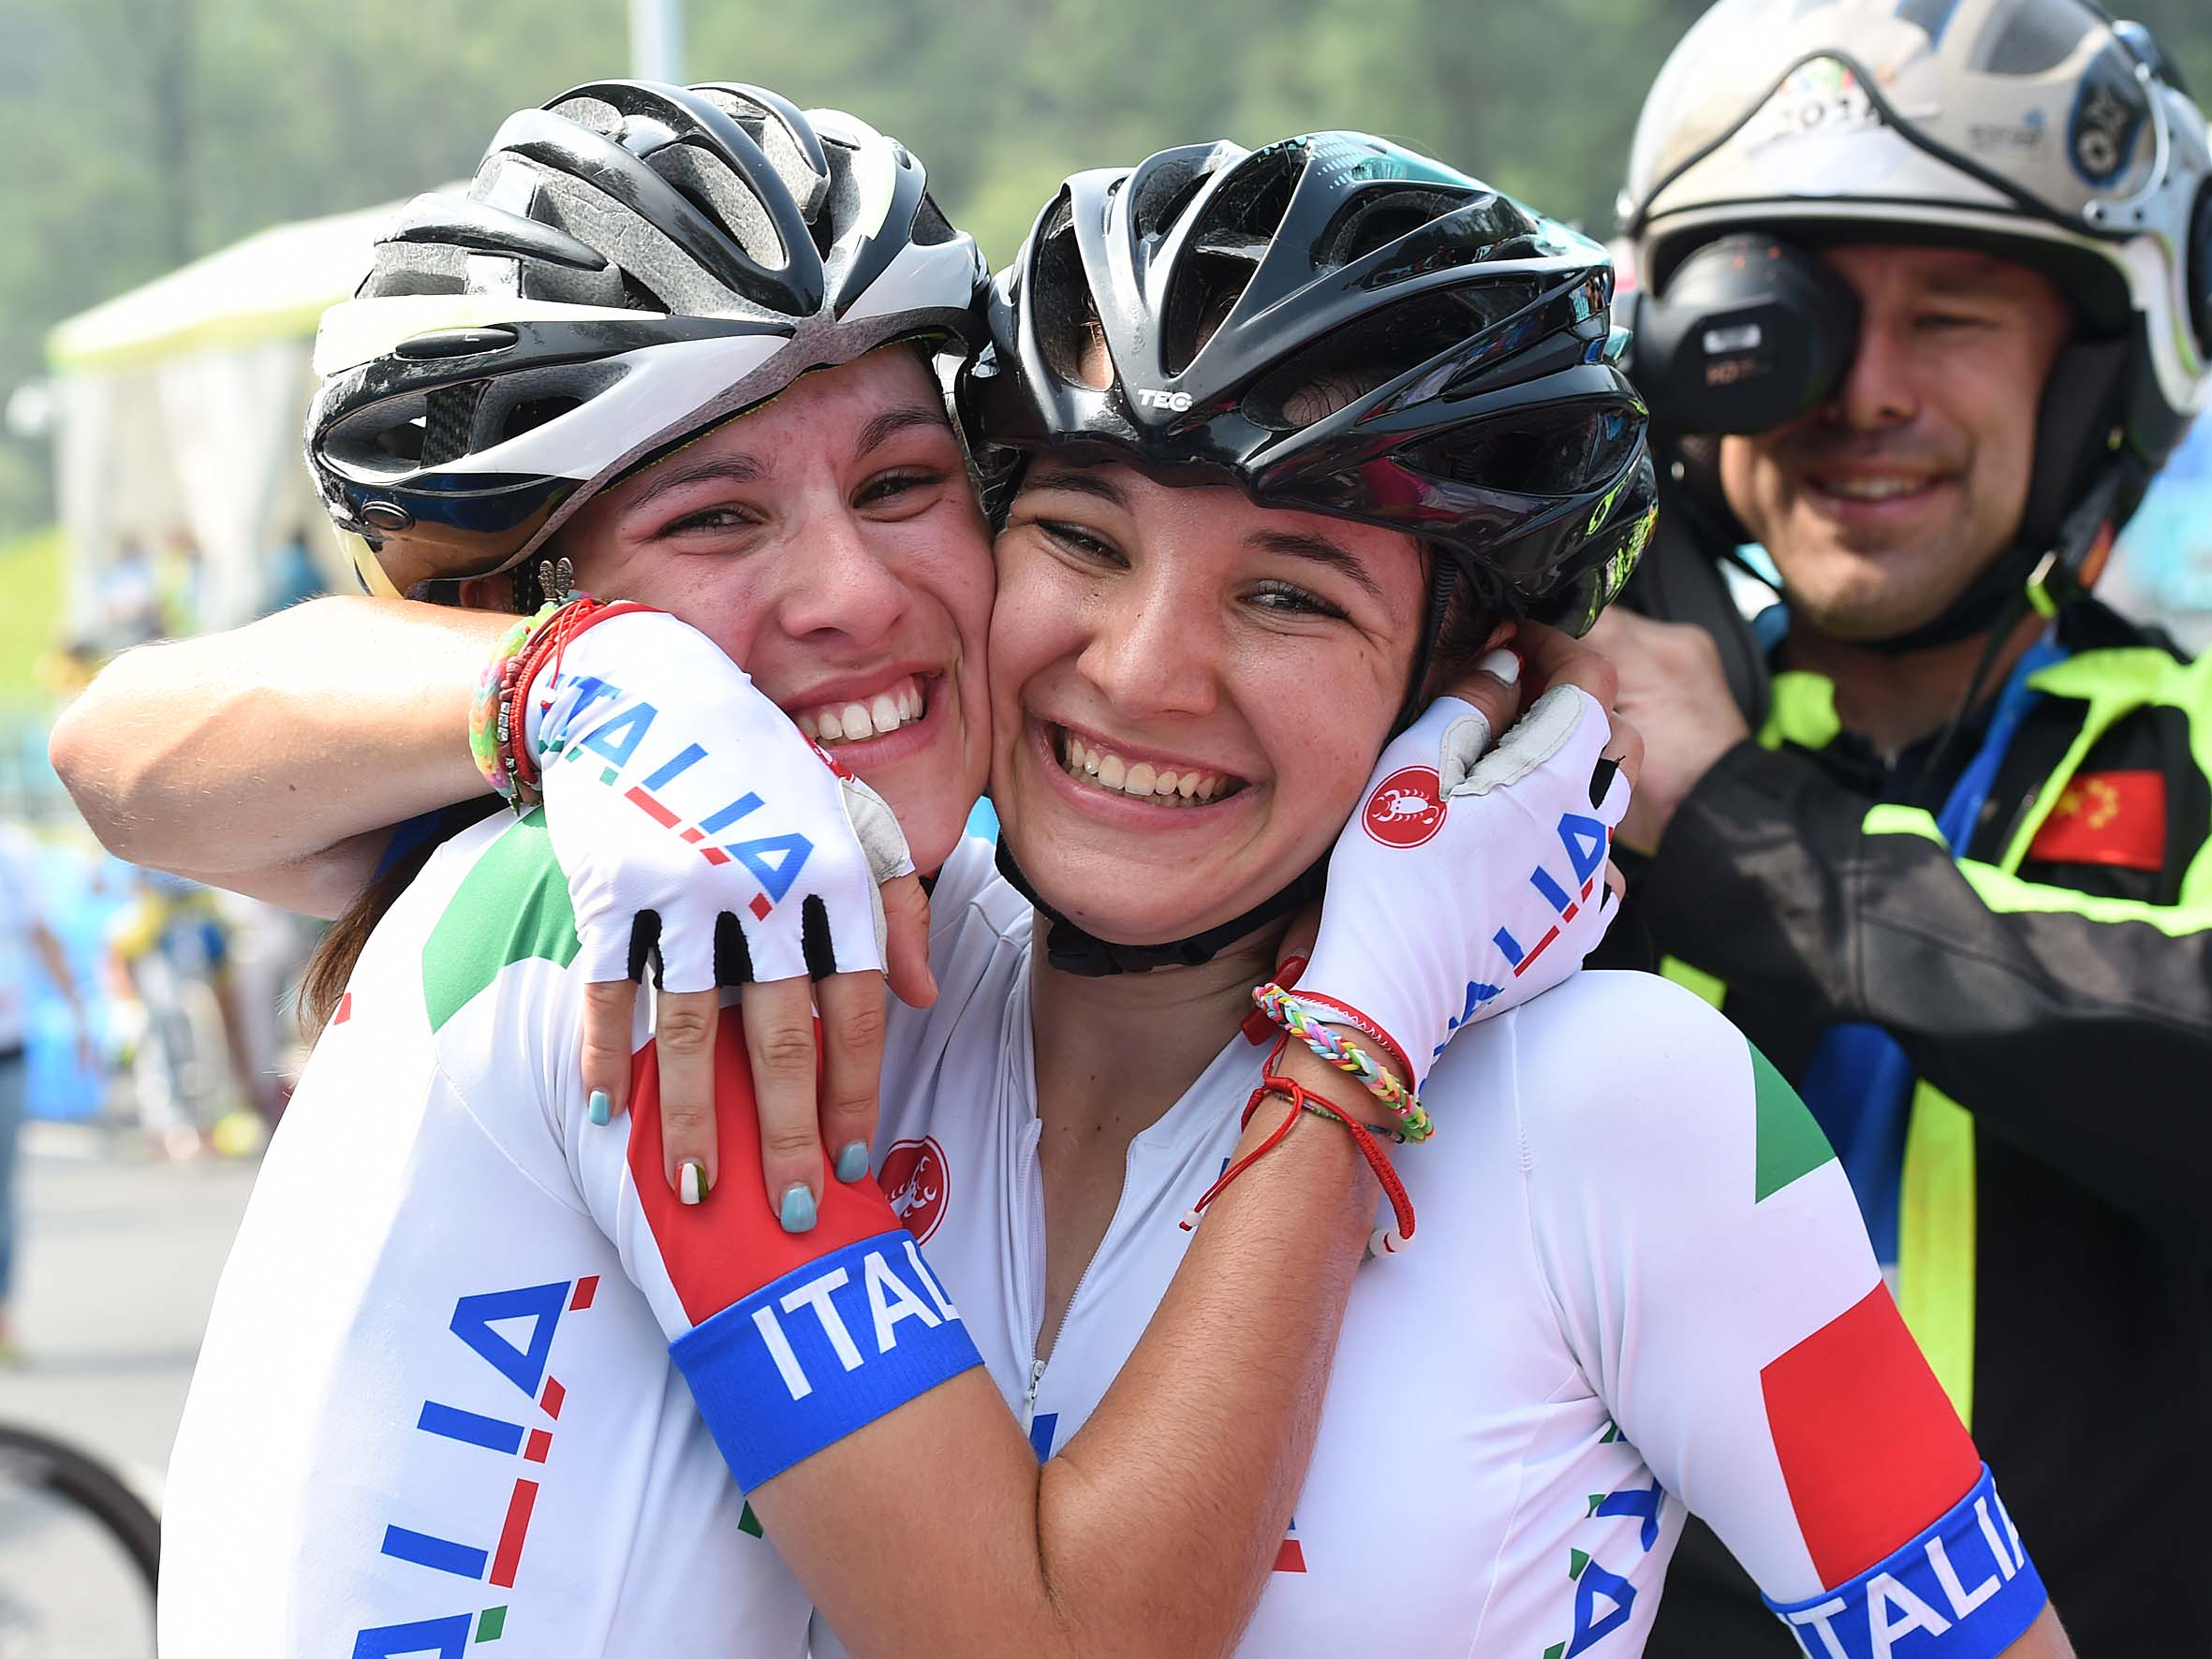 Ciclismo donne 14